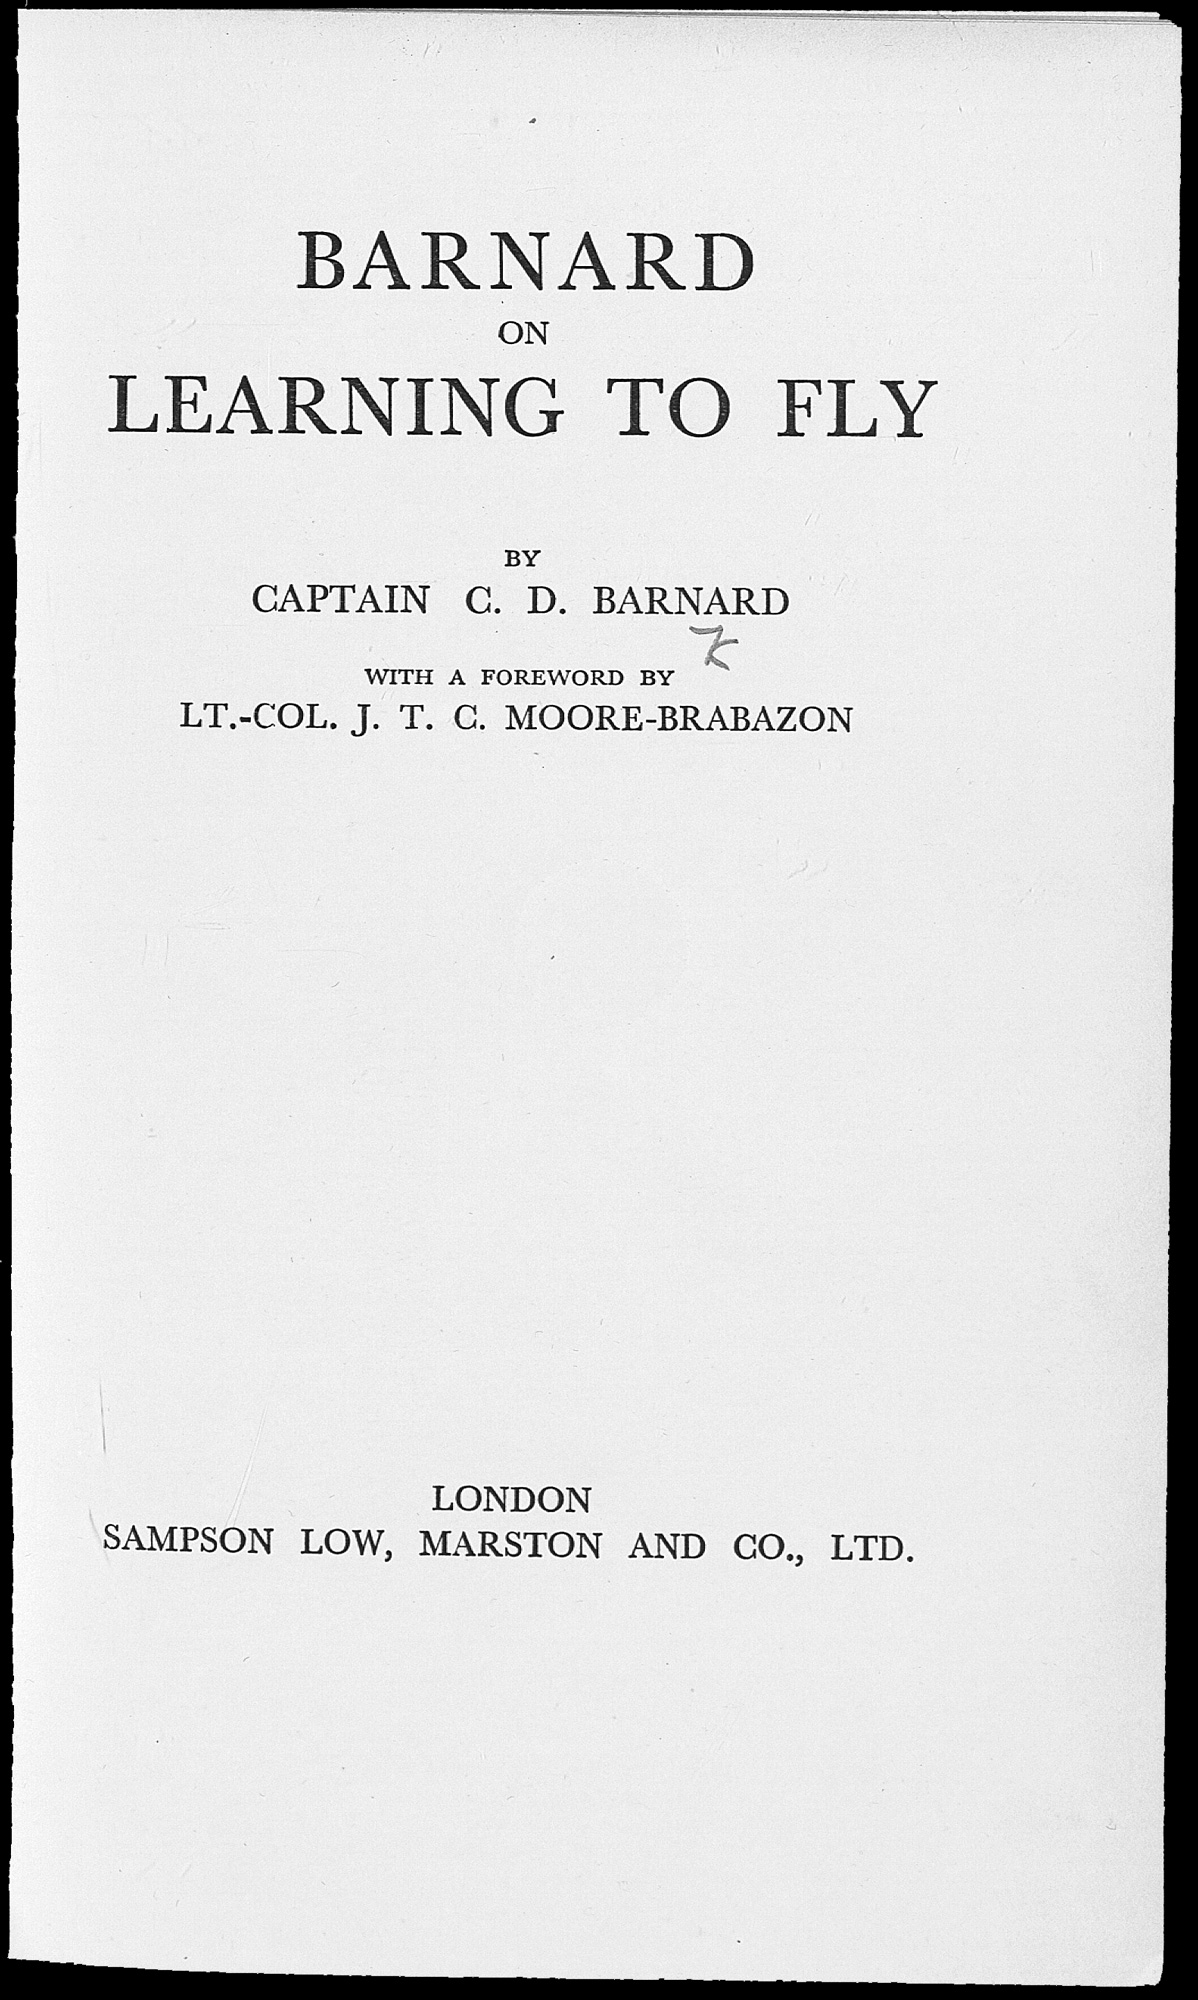 Barnard on learning to fly